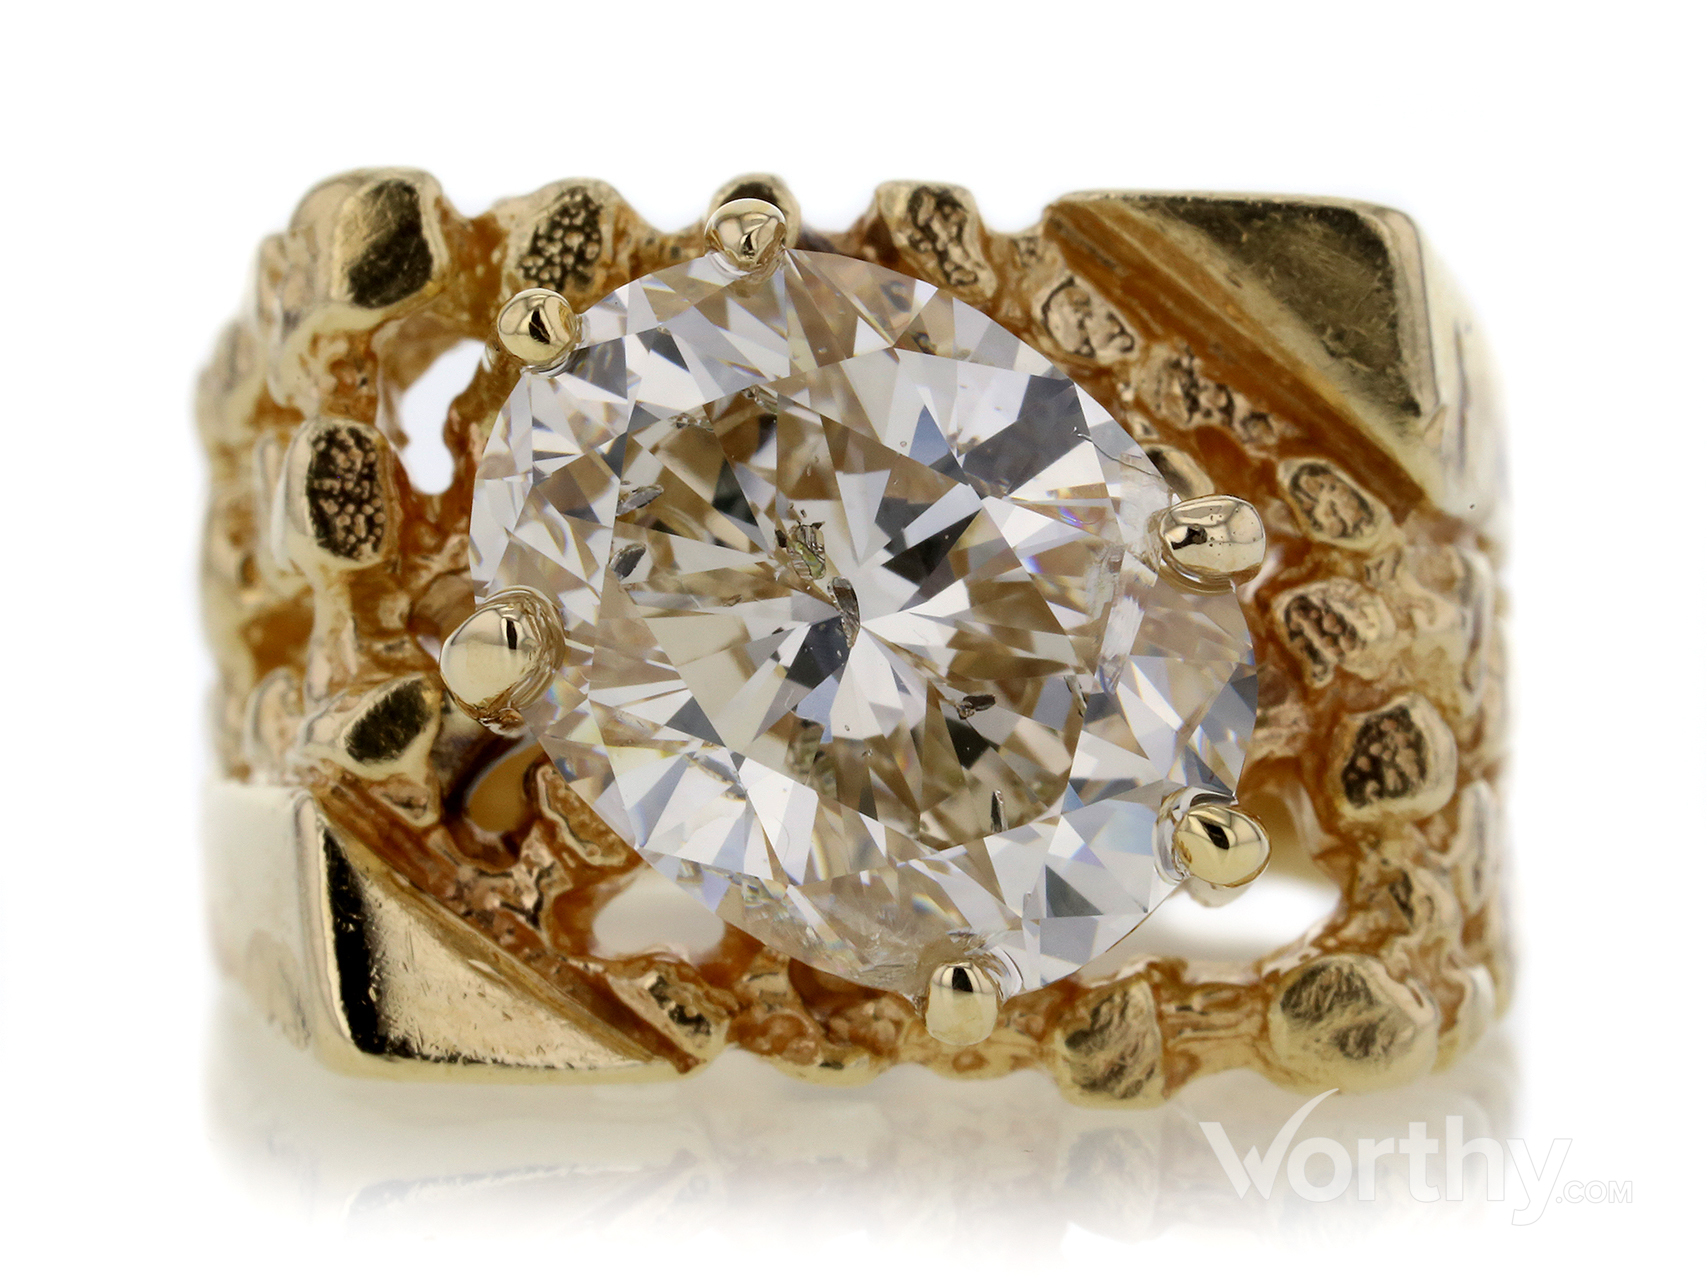 Sell Your Diamond 6 08 Carat Sold For 10 957 Worthy